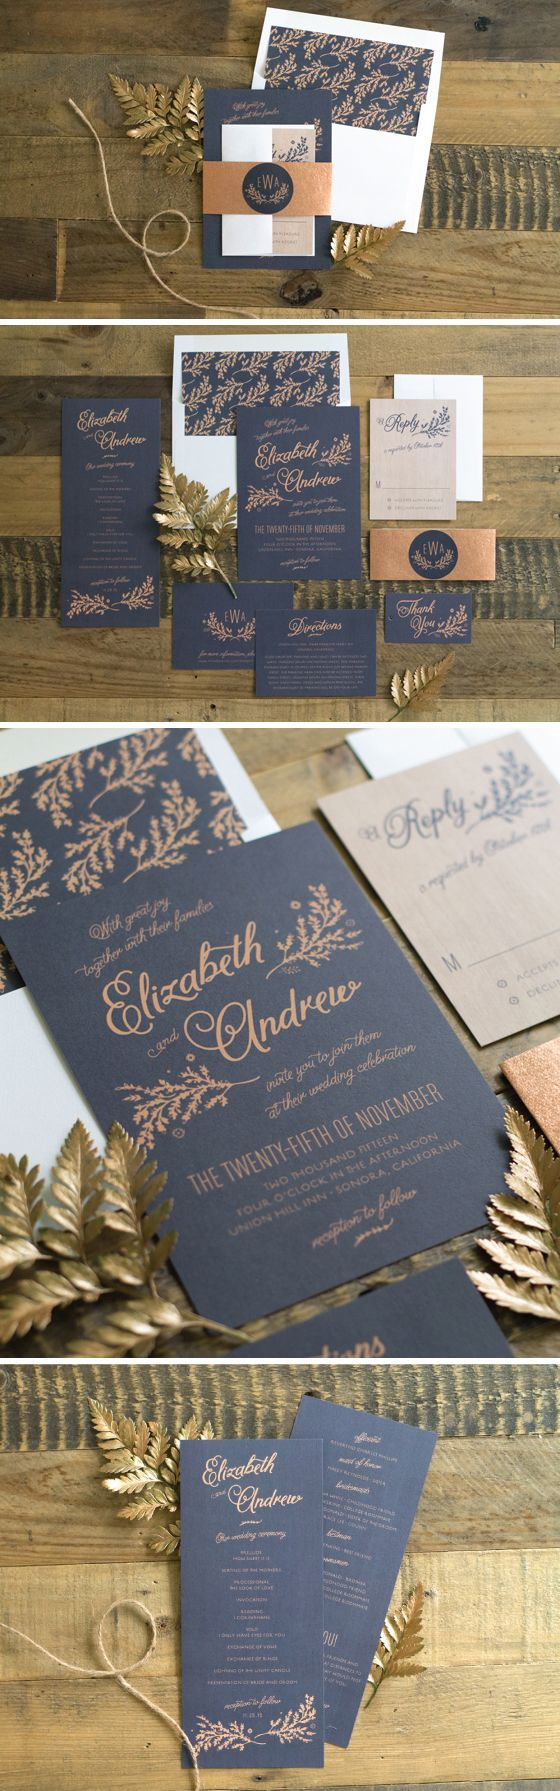 4258 Best Unique Wedding Invitation Images On Pinterest